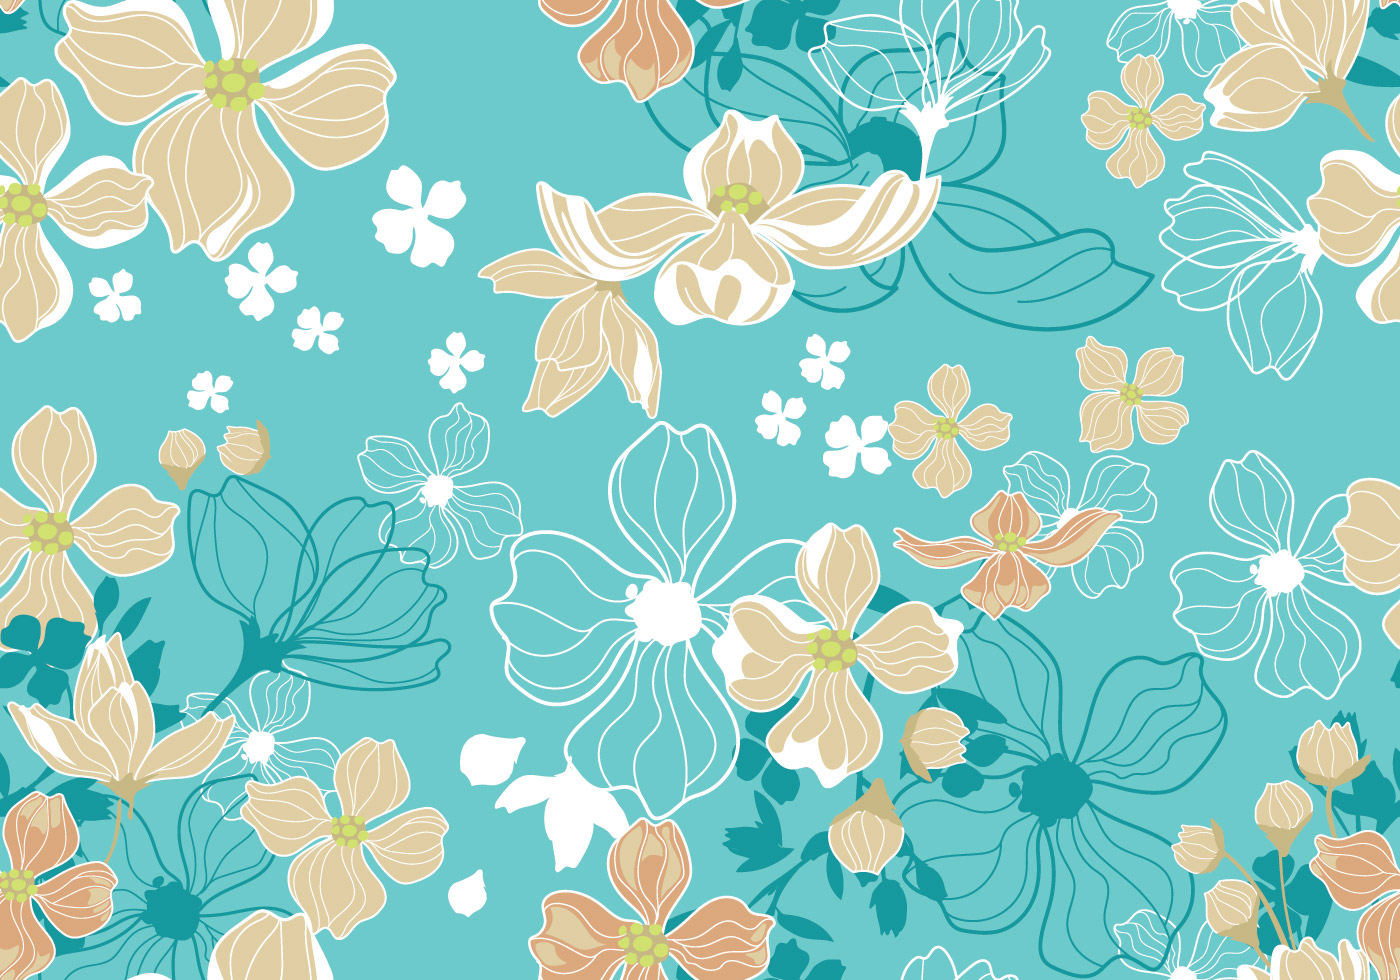 Black Camouflage Wallpaper Dogwood Seamless Pattern Download Free Vector Art Stock